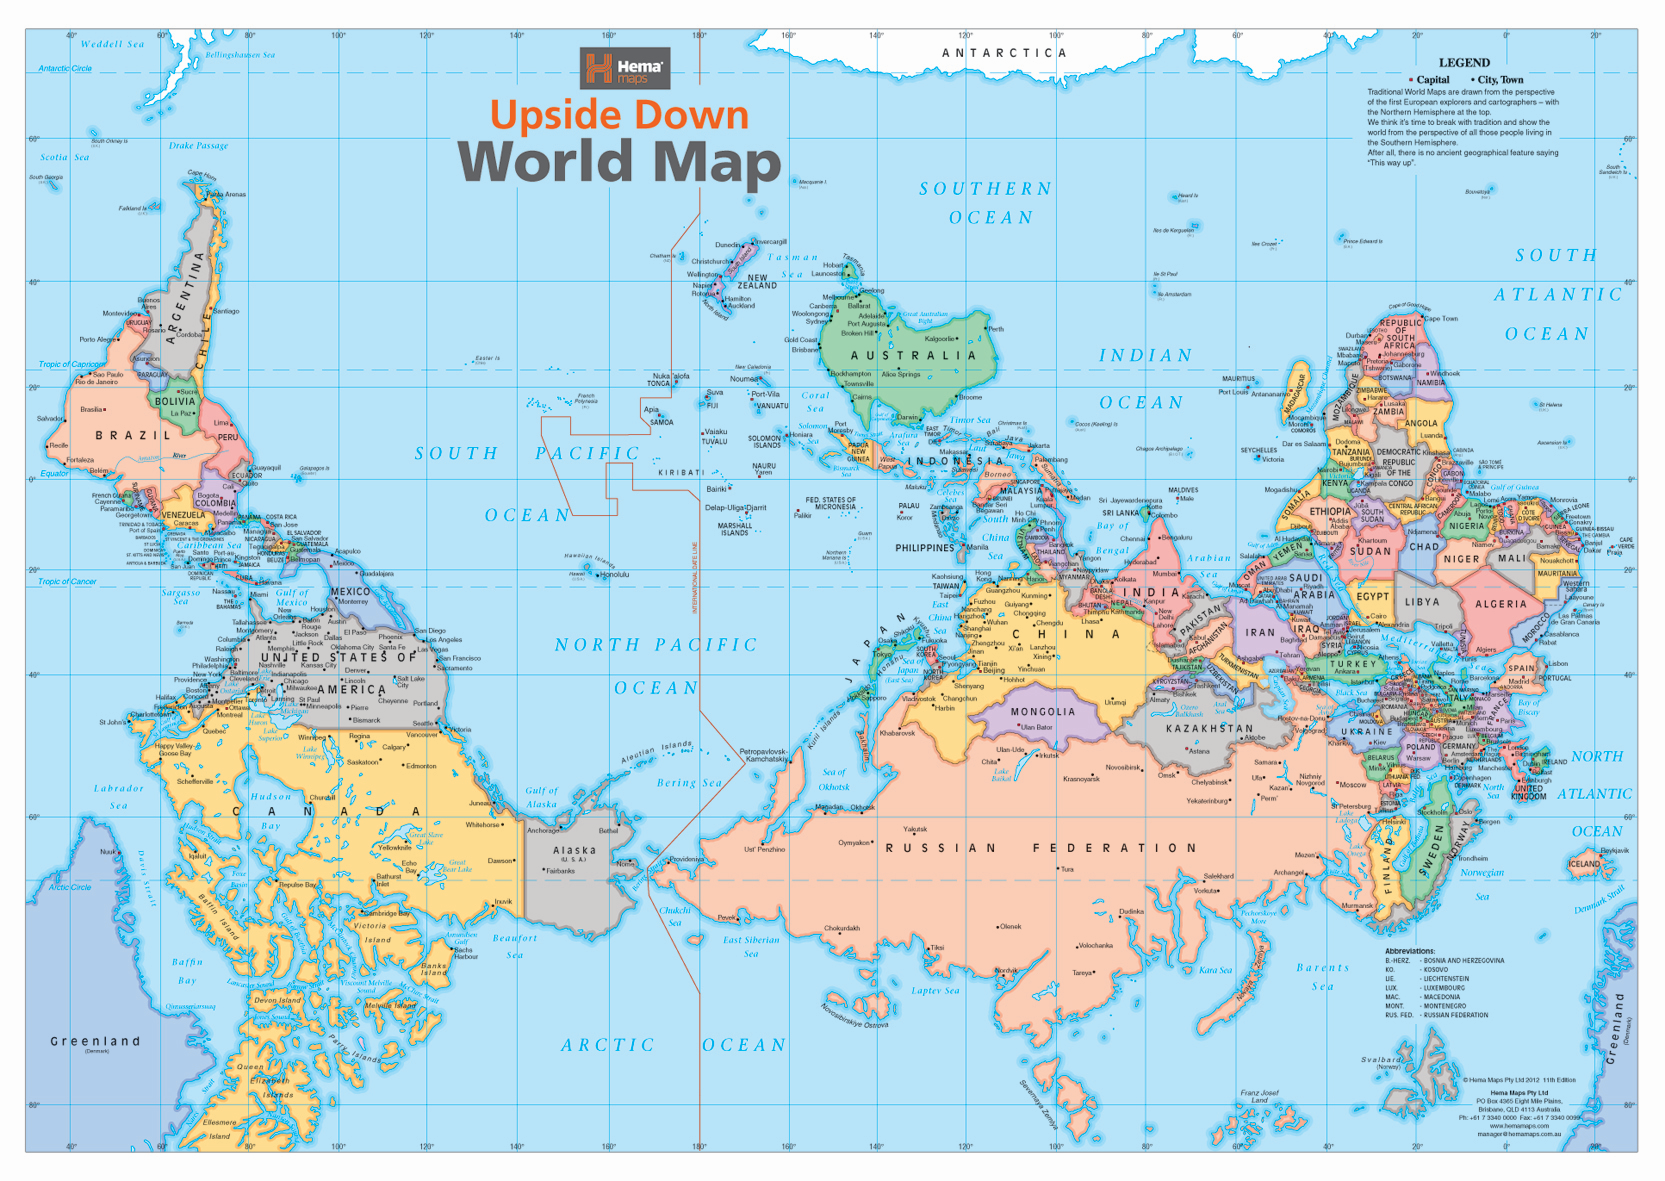 Austrailian world map roho4senses austrailian world map gumiabroncs